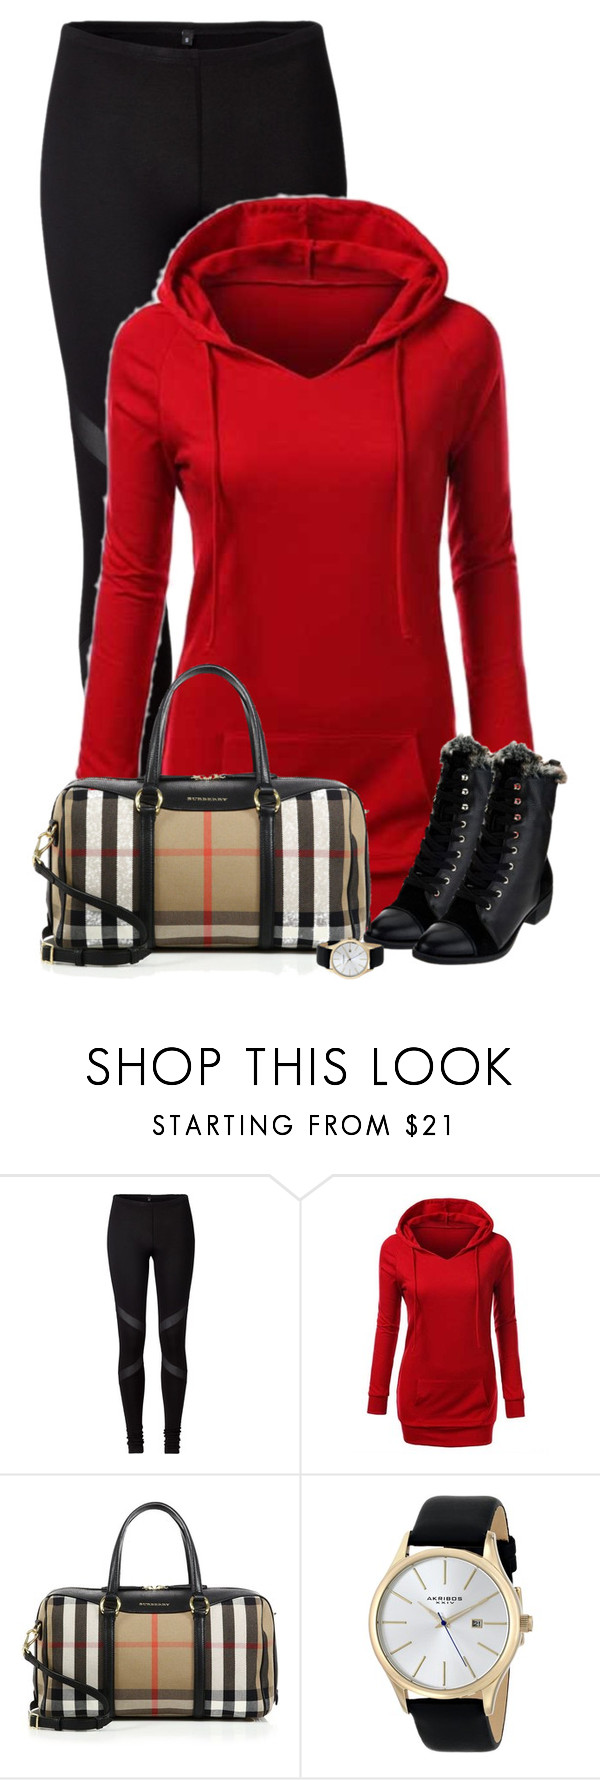 """""""Untitled #516"""" by denise-schmeltzer ❤ liked on Polyvore featuring Burberry, Akribos XXIV, women's clothing, women's fashion, women, female, woman, misses and juniors"""